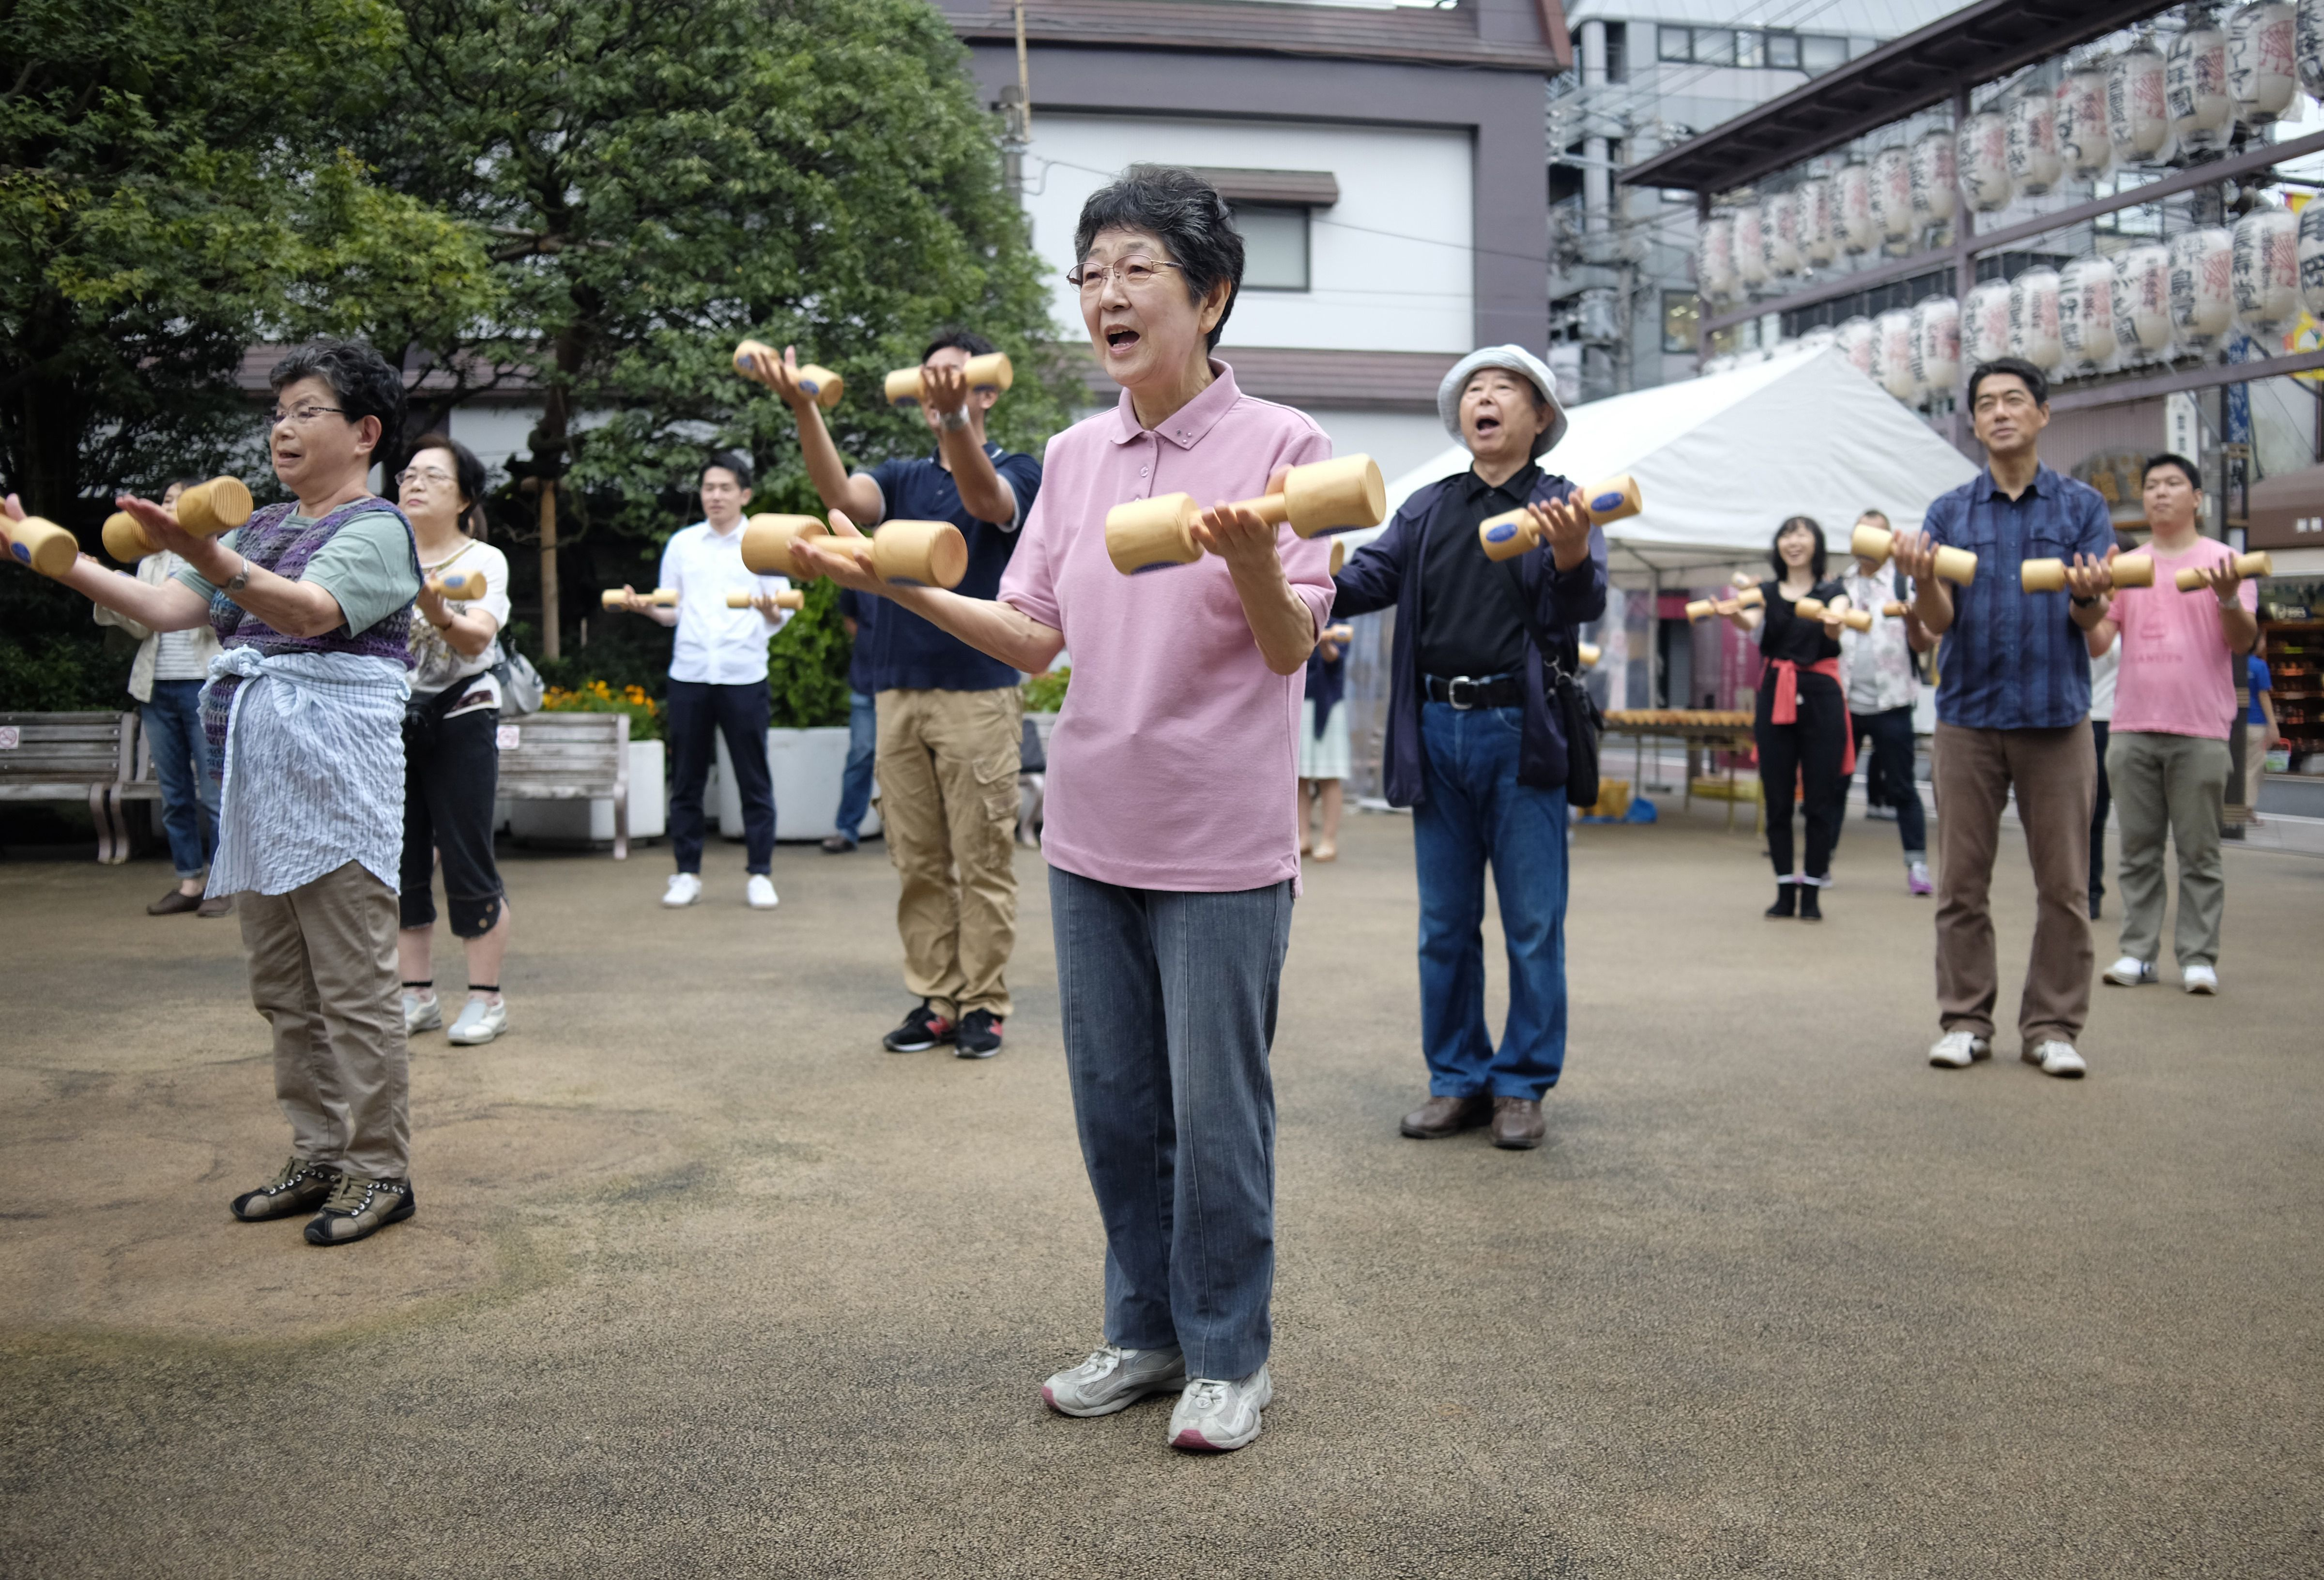 Elderly people work out with wooden dumb-bells in the grounds of a temple in Tokyo.